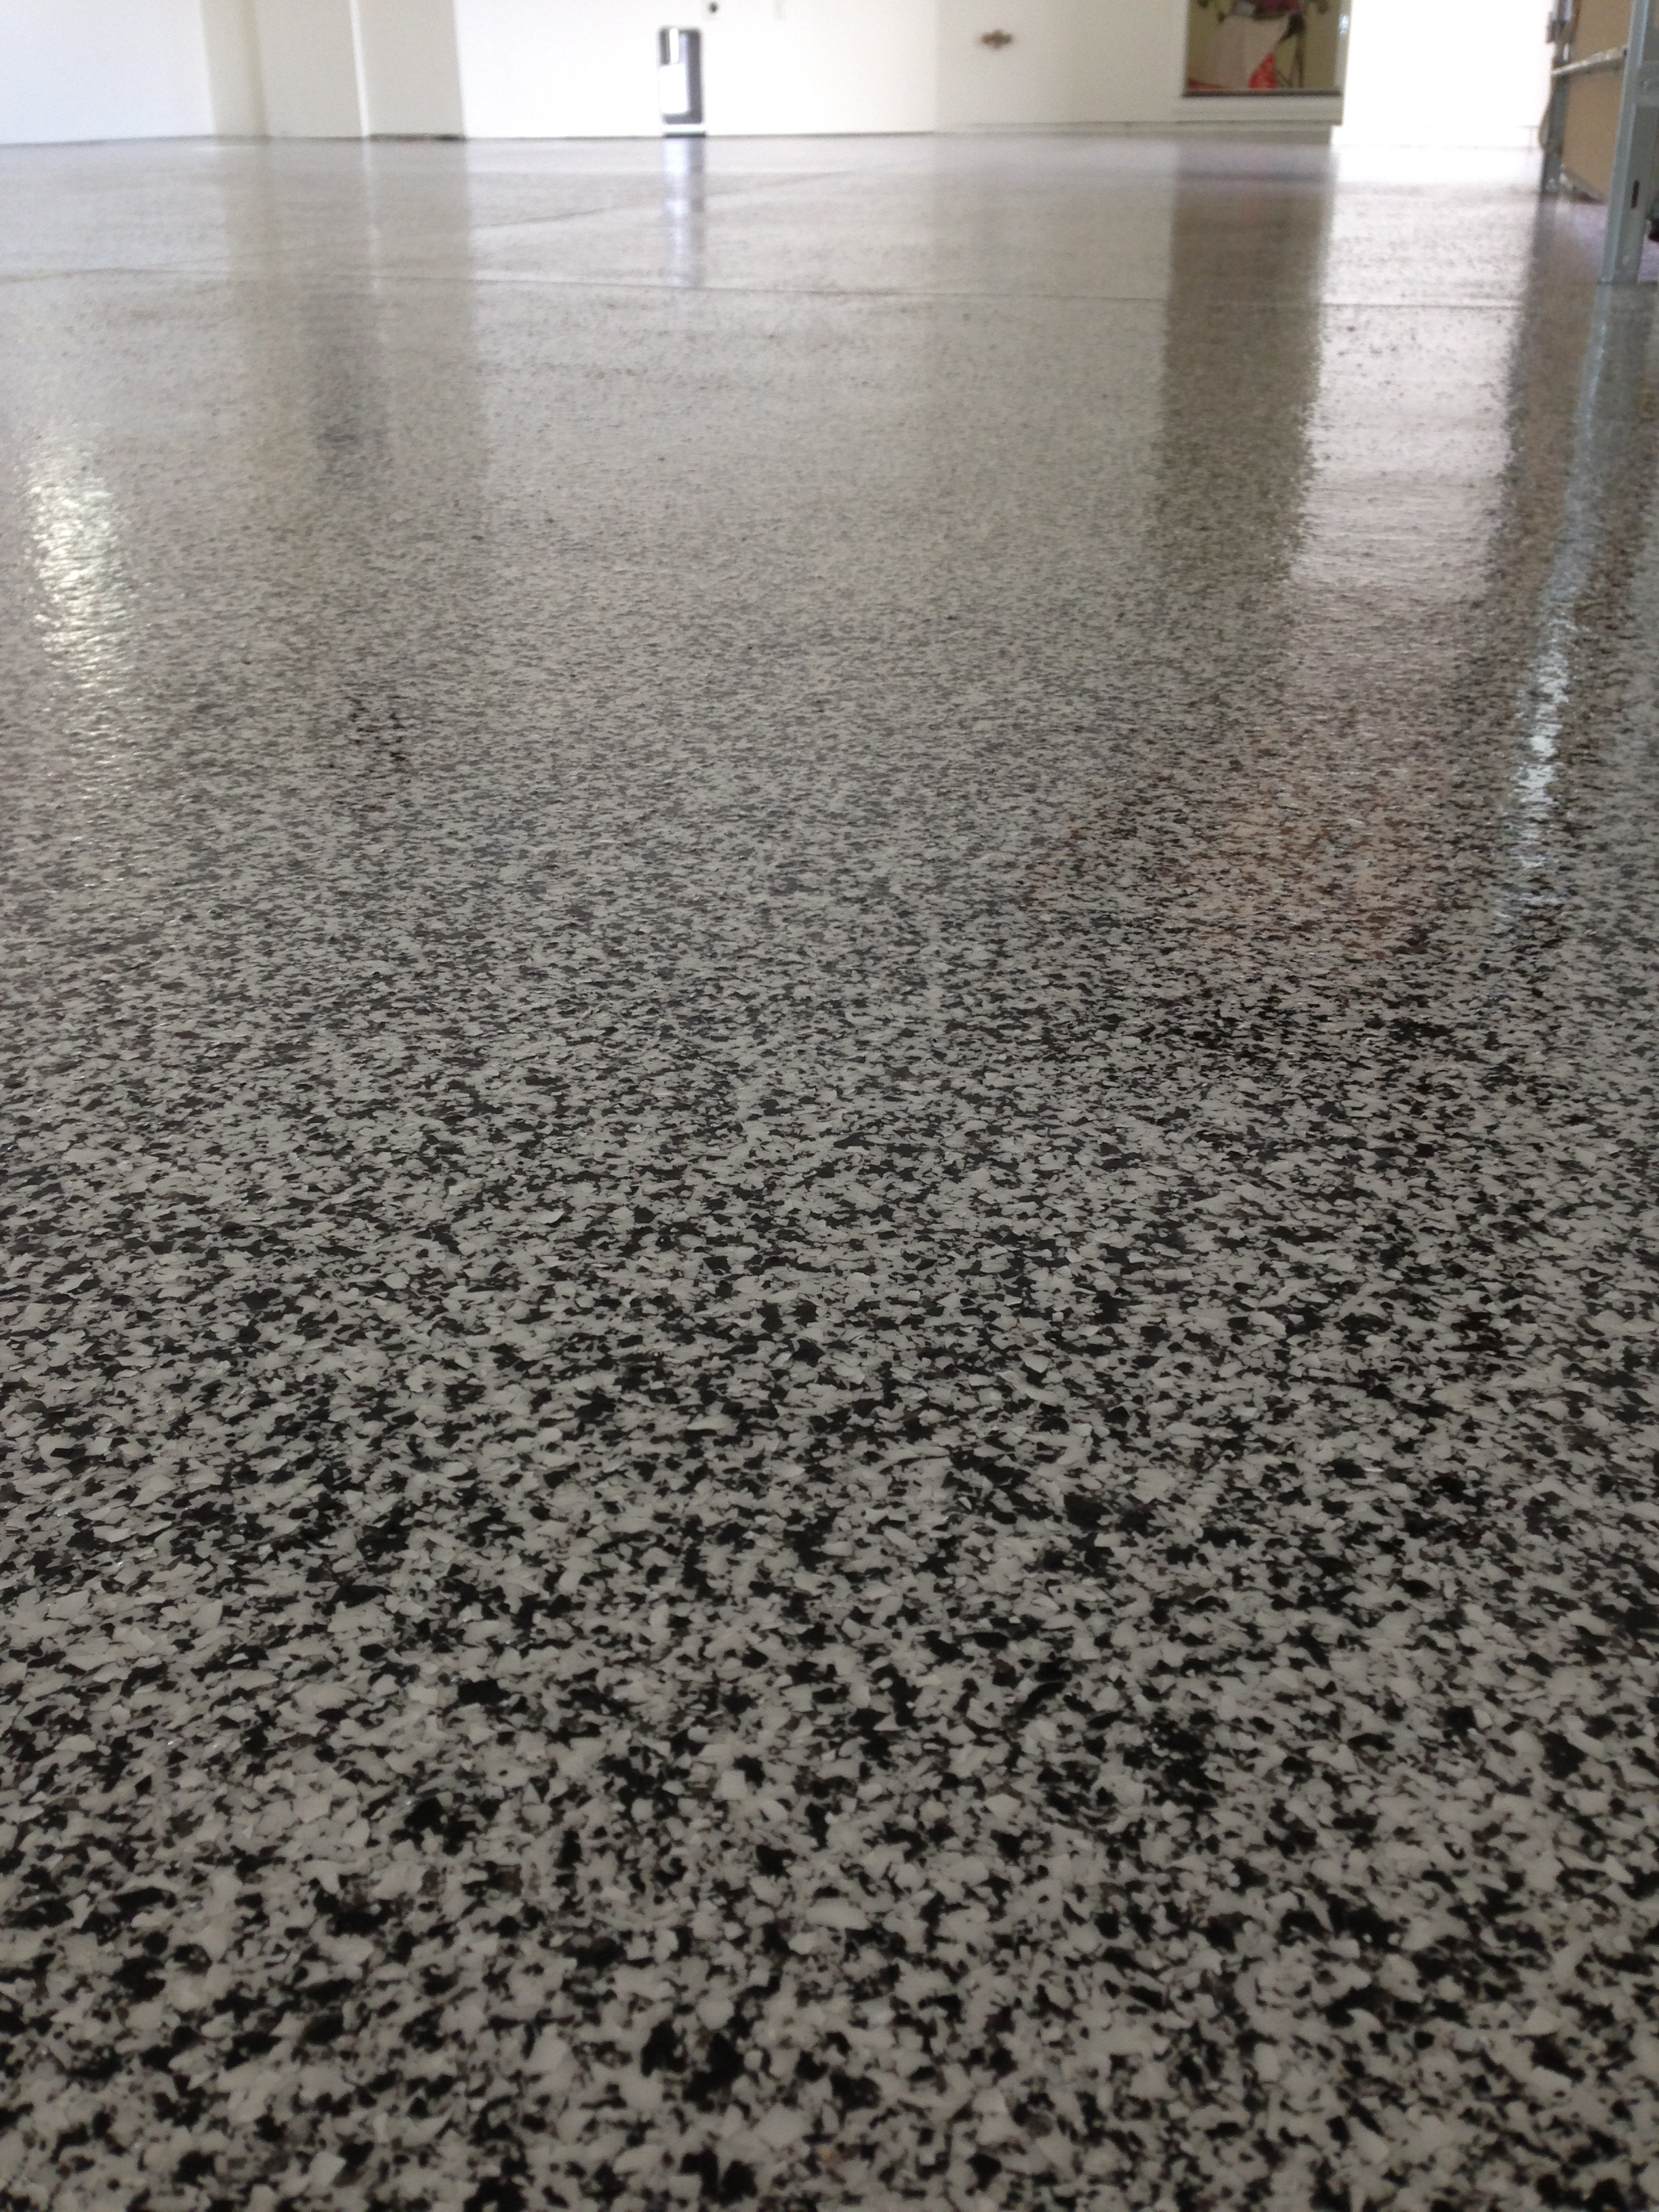 Colorado garage floor epoxy coating